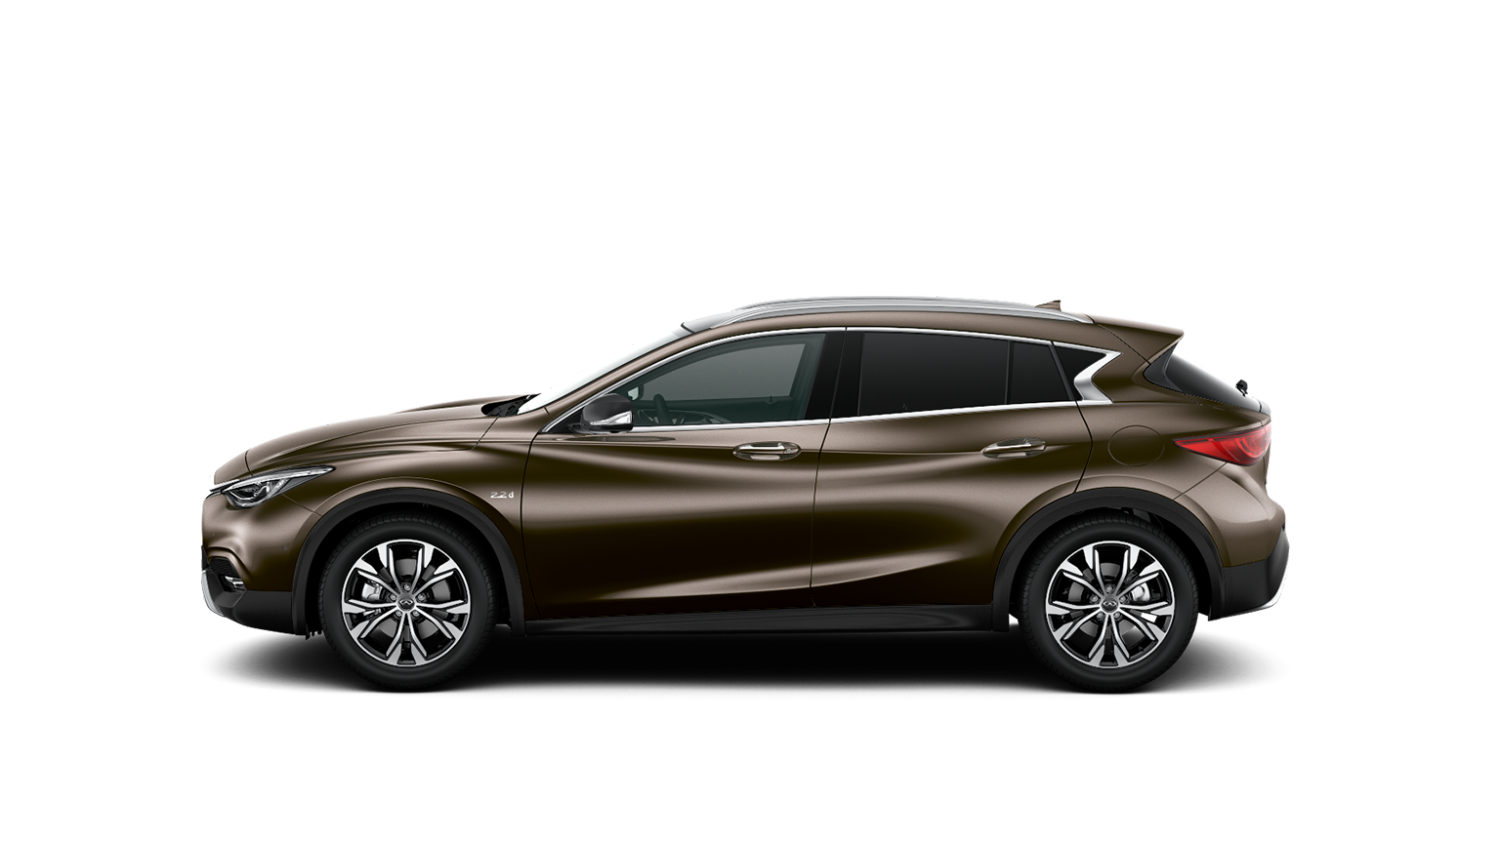 Nieuwe infiniti modellen sedans coup s crossovers suv 39 s for South motors infiniti service